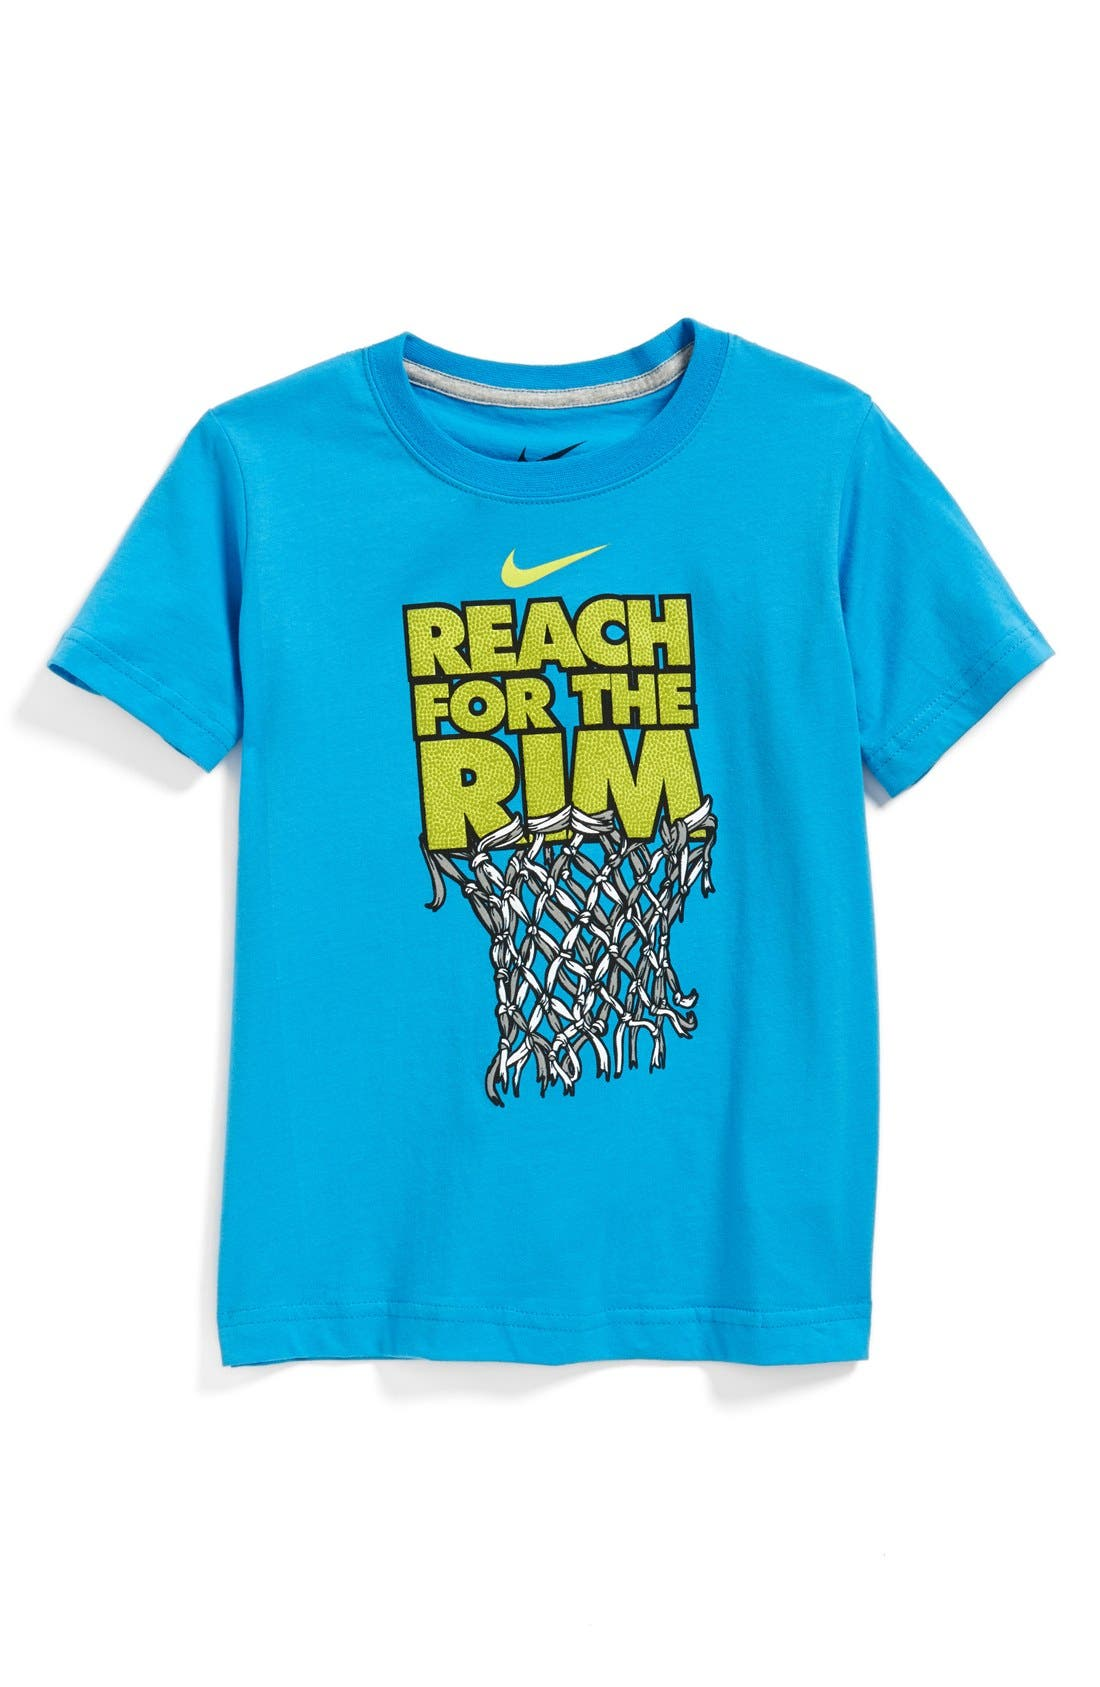 Main Image - Nike 'Reach for the Rim' Graphic T-Shirt (Little Boys)